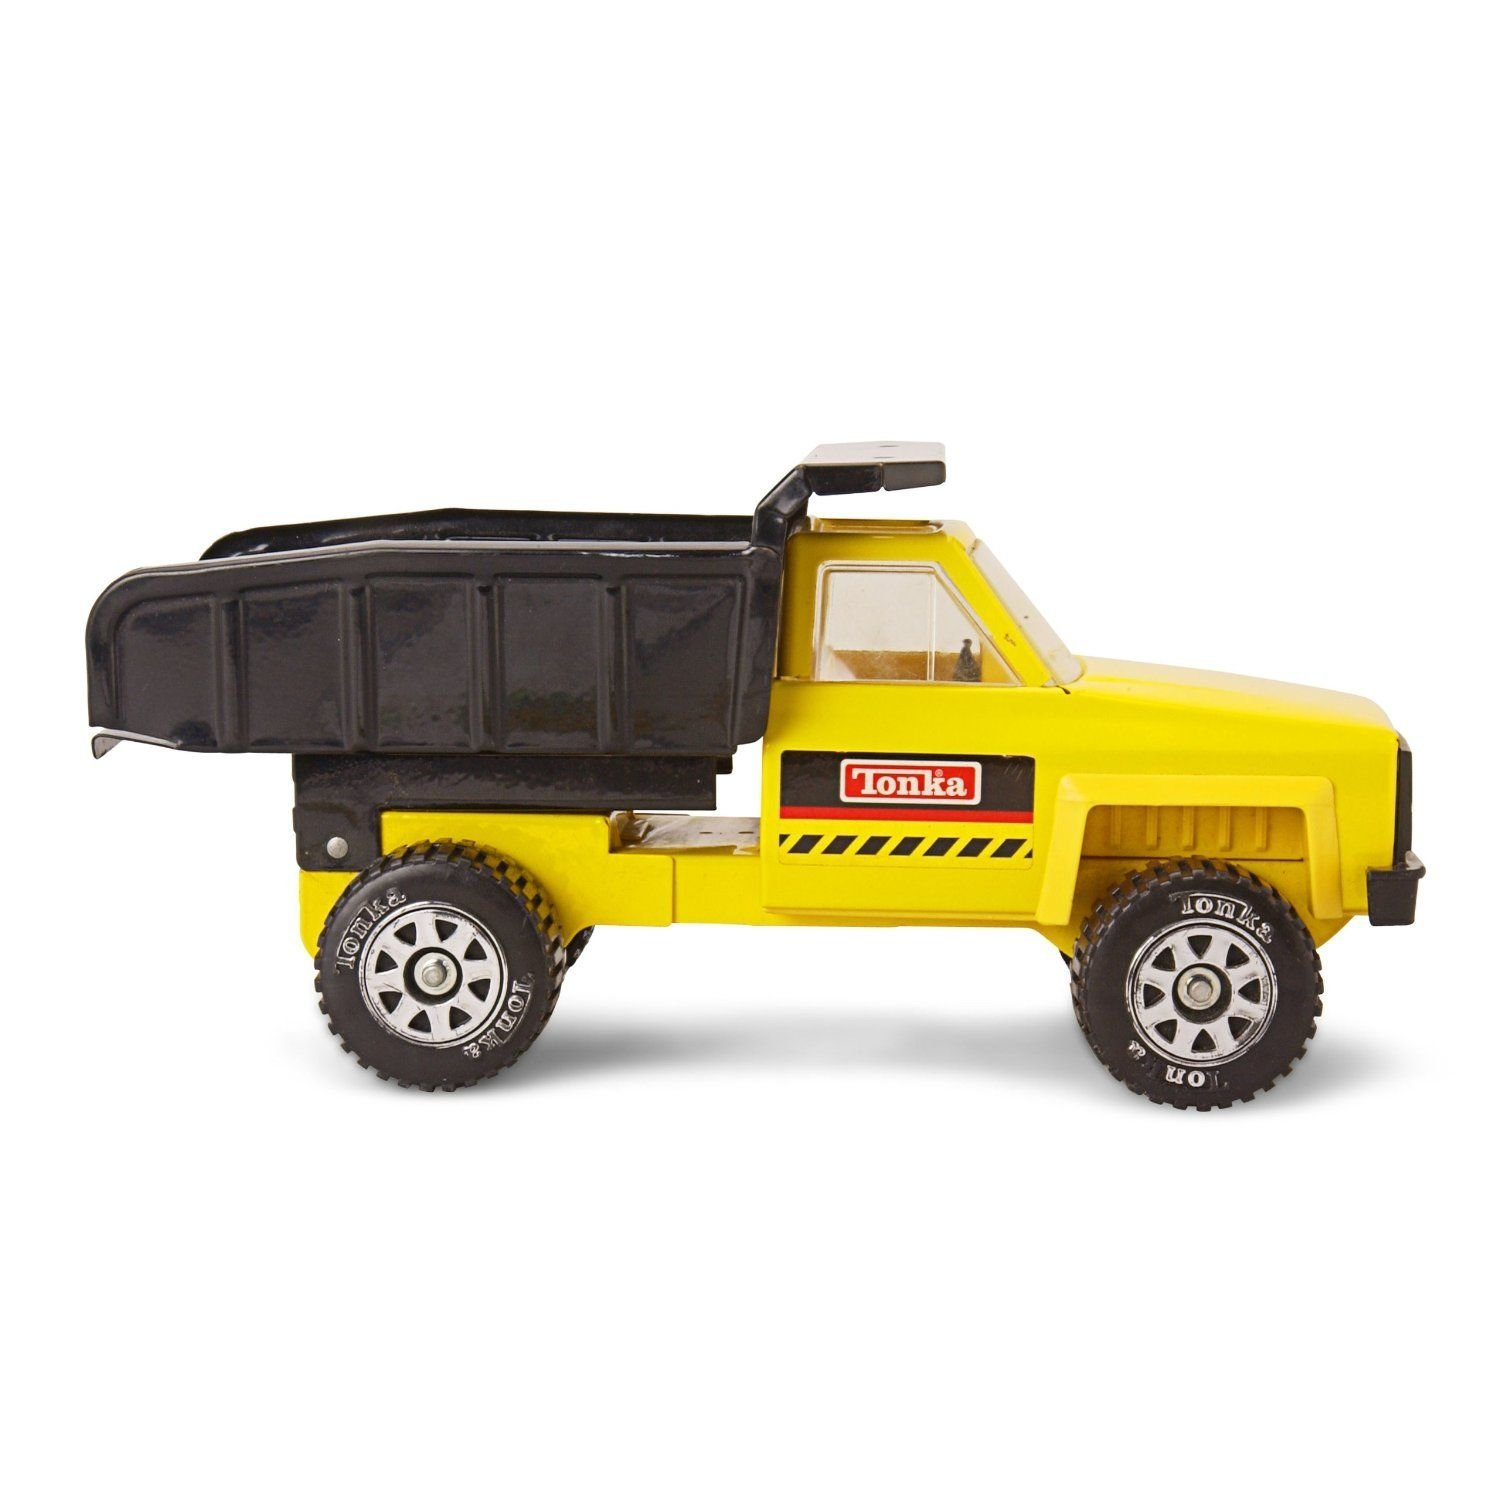 Tonka Retro Classic Steel Quarry Dump Truck Vehicle Multi-Colored